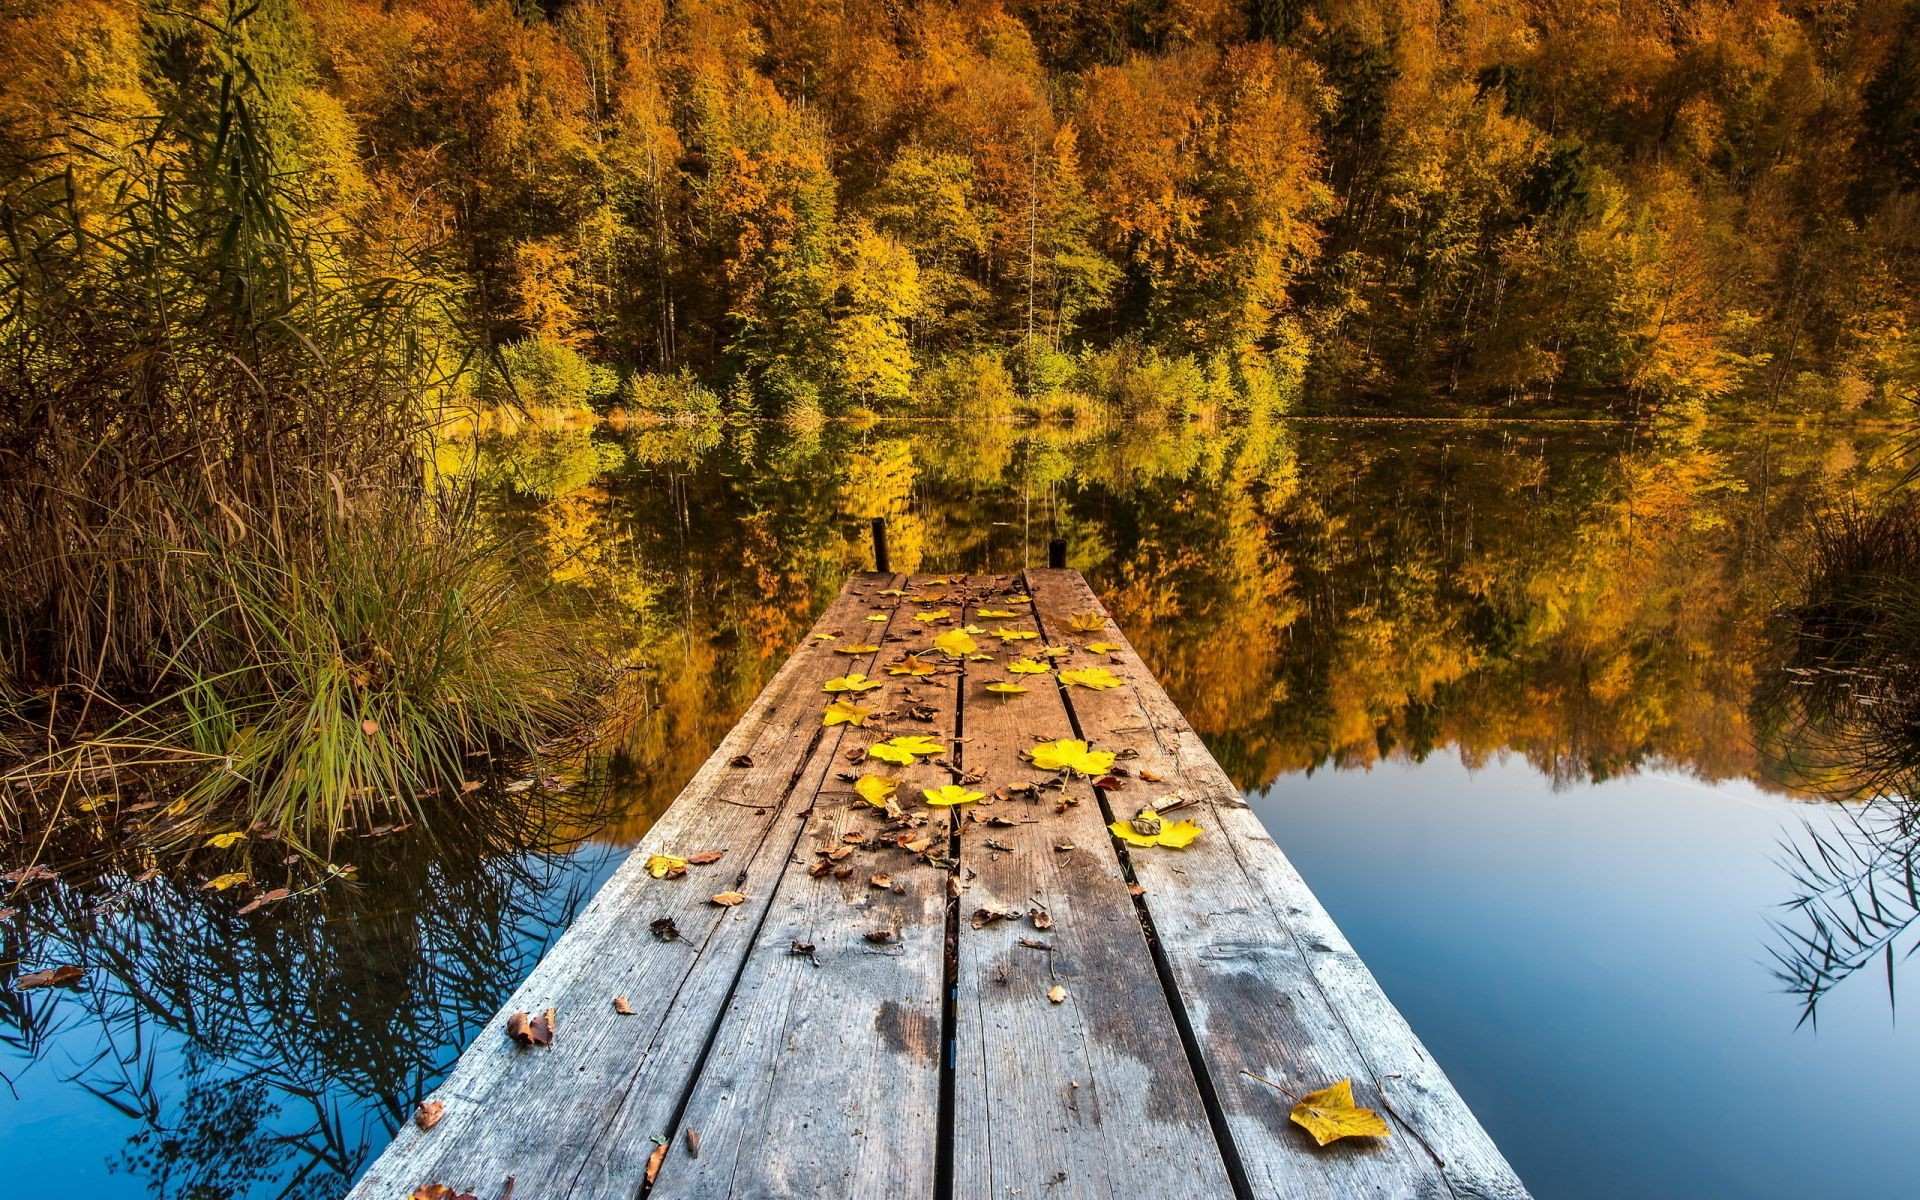 lake wood fall tree landscape nature water scenic river outdoors leaf daylight season reflection travel park environment scenery fair weather